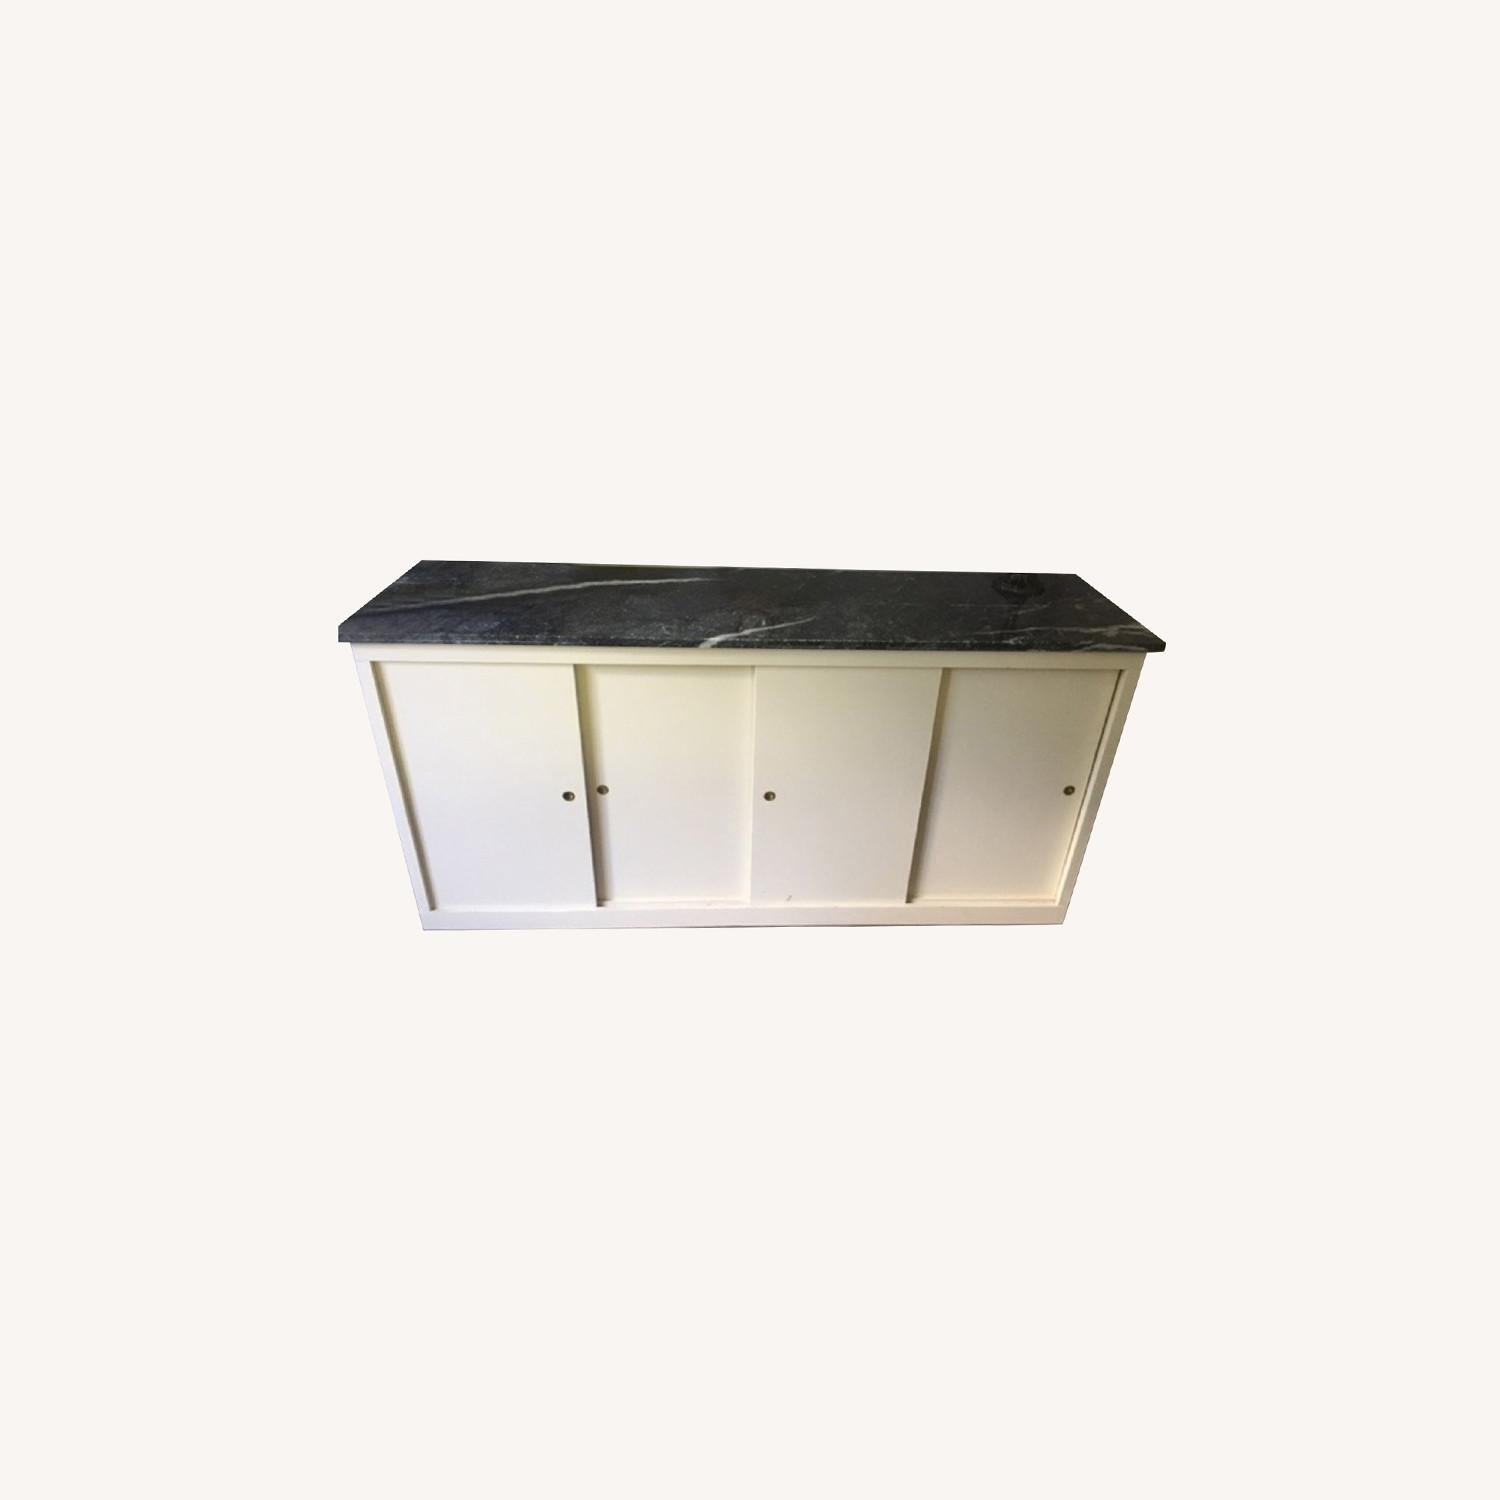 Office Storage Unit with Granite Counter Top - image-0